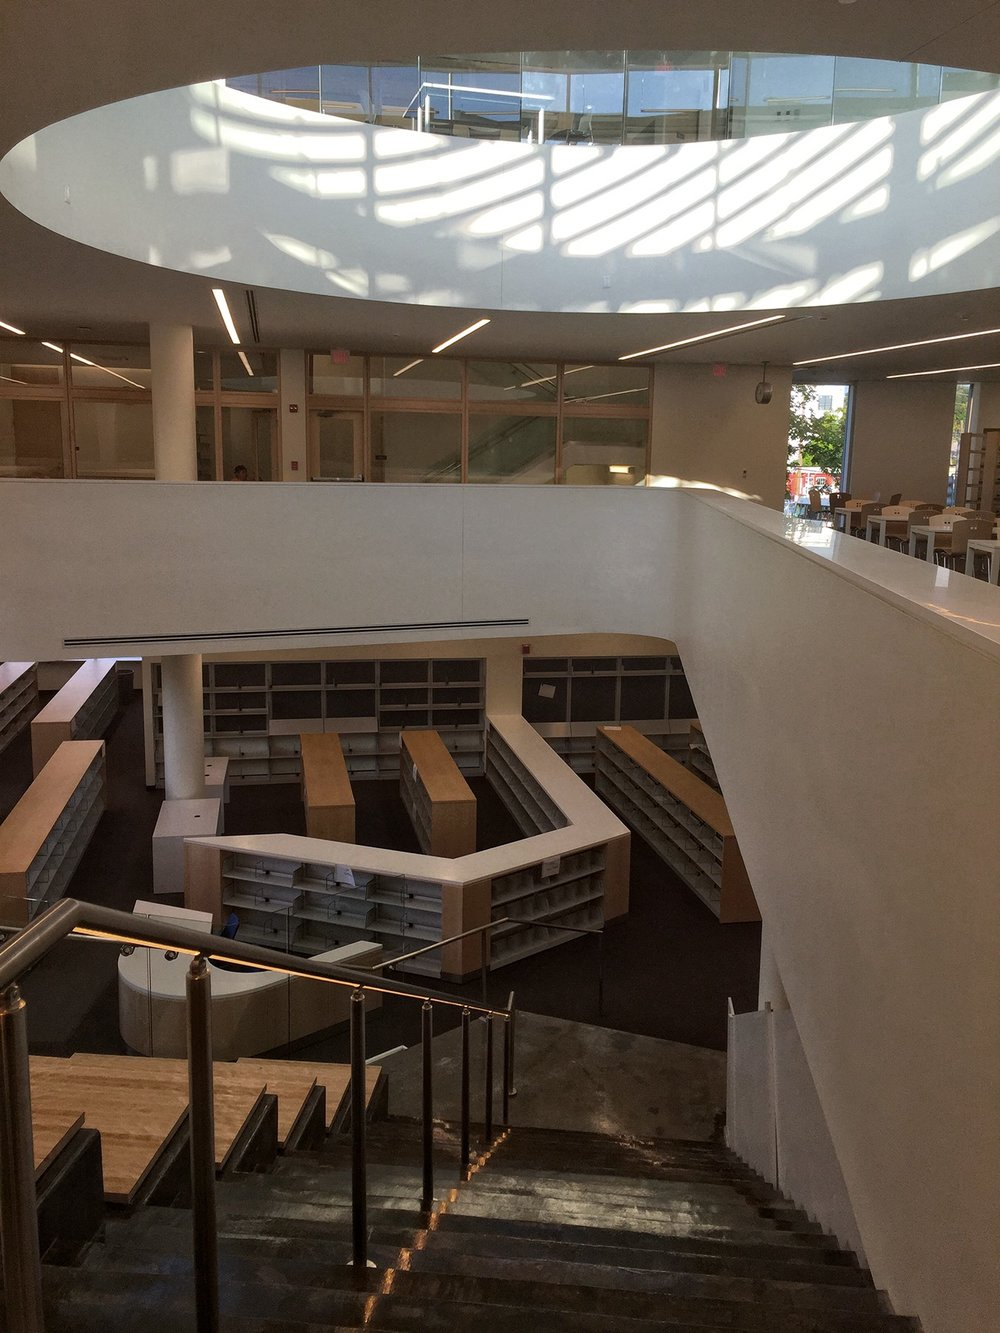 Woodridge Library: Cleaning, Carpentry, Finishing, Painting, and Landscaping